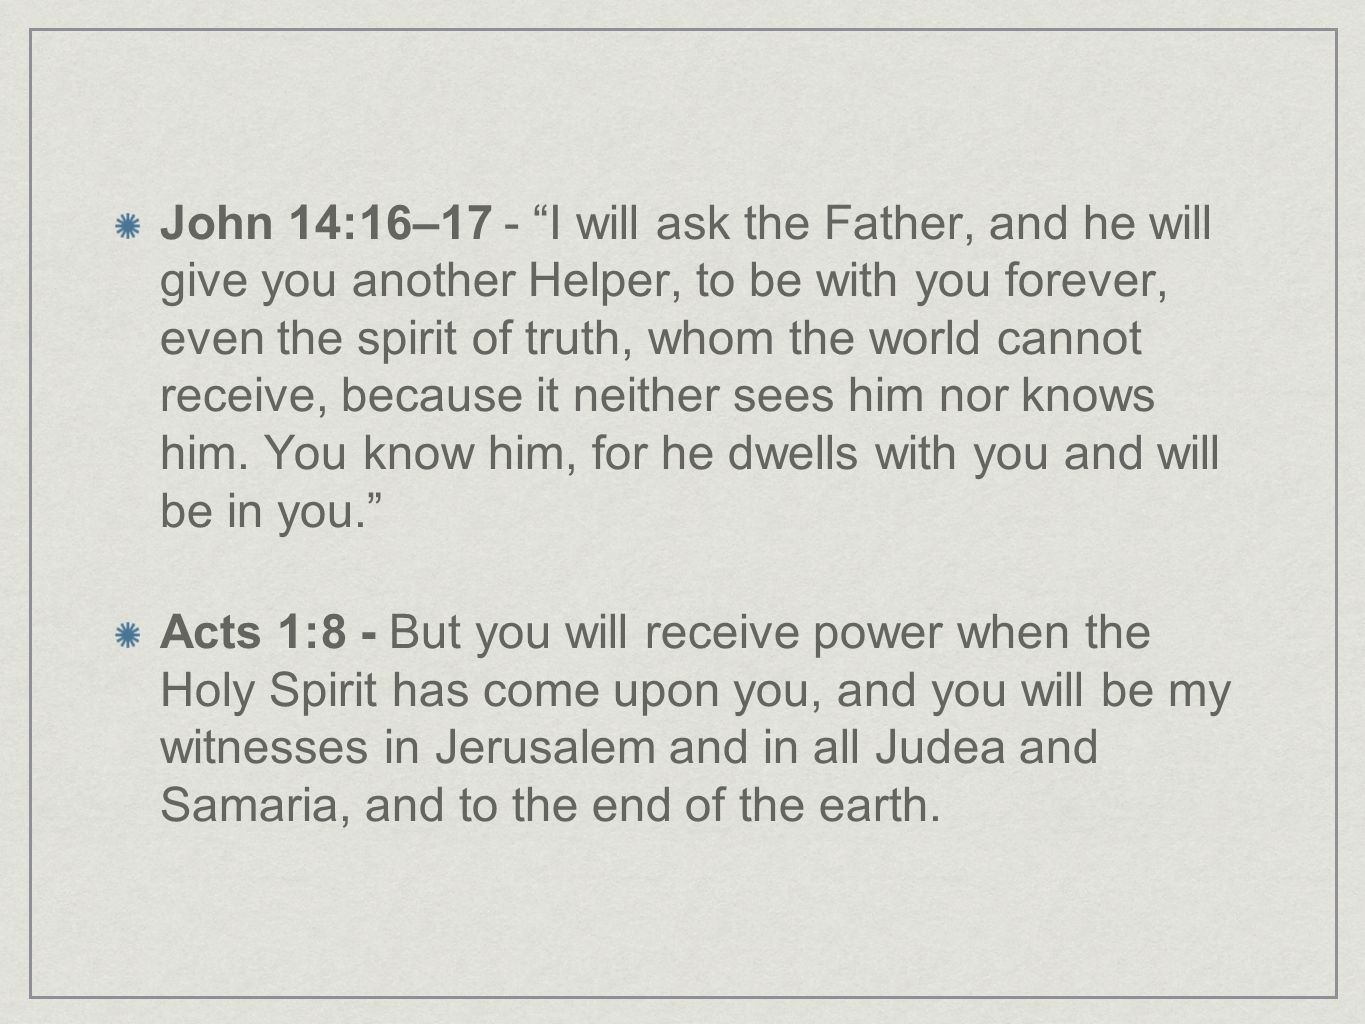 John 14:16–17 - I will ask the Father, and he will give you another Helper, to be with you forever, even the spirit of truth, whom the world cannot receive, because it neither sees him nor knows him. You know him, for he dwells with you and will be in you.